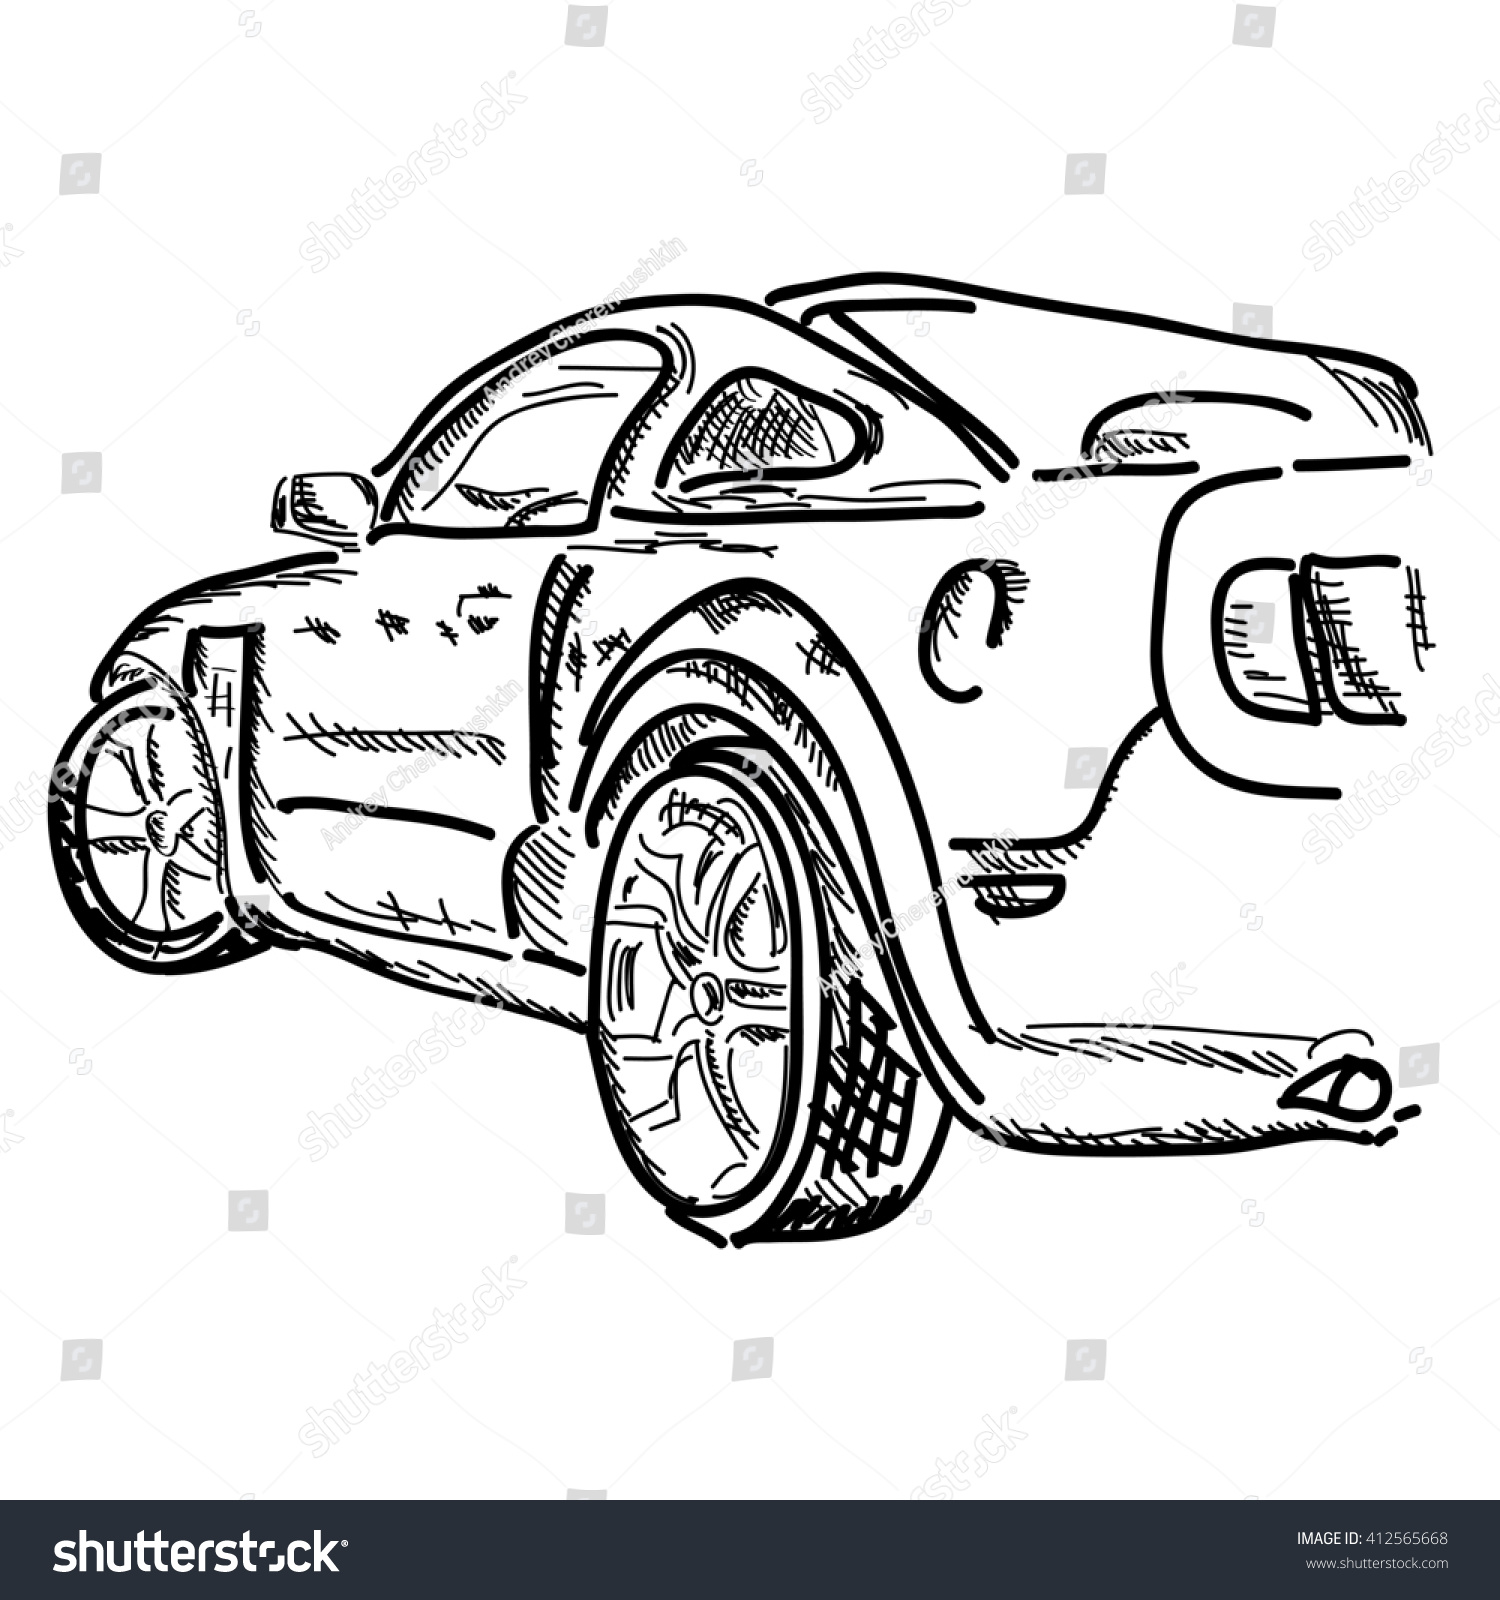 Hand draw simple sketch car can be use for poster wallpaper background